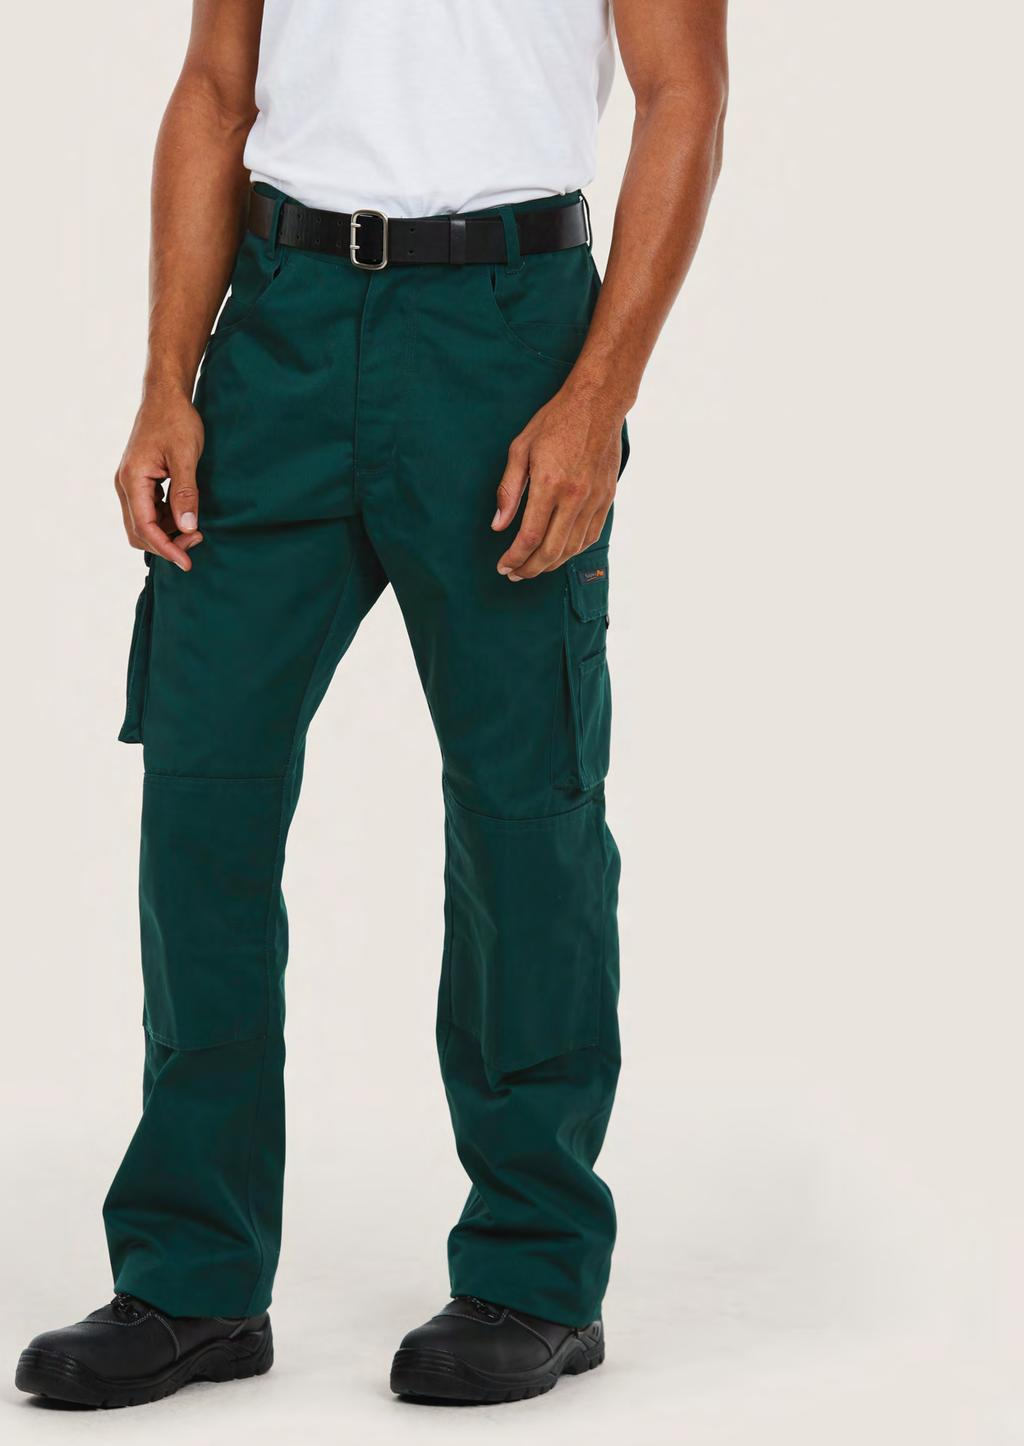 TROUSERS UC906 UNISEX SUPER PRO TROUSERS 330 60 25/5 65% Polyester, 35% Cotton Fabric: 330 /9.